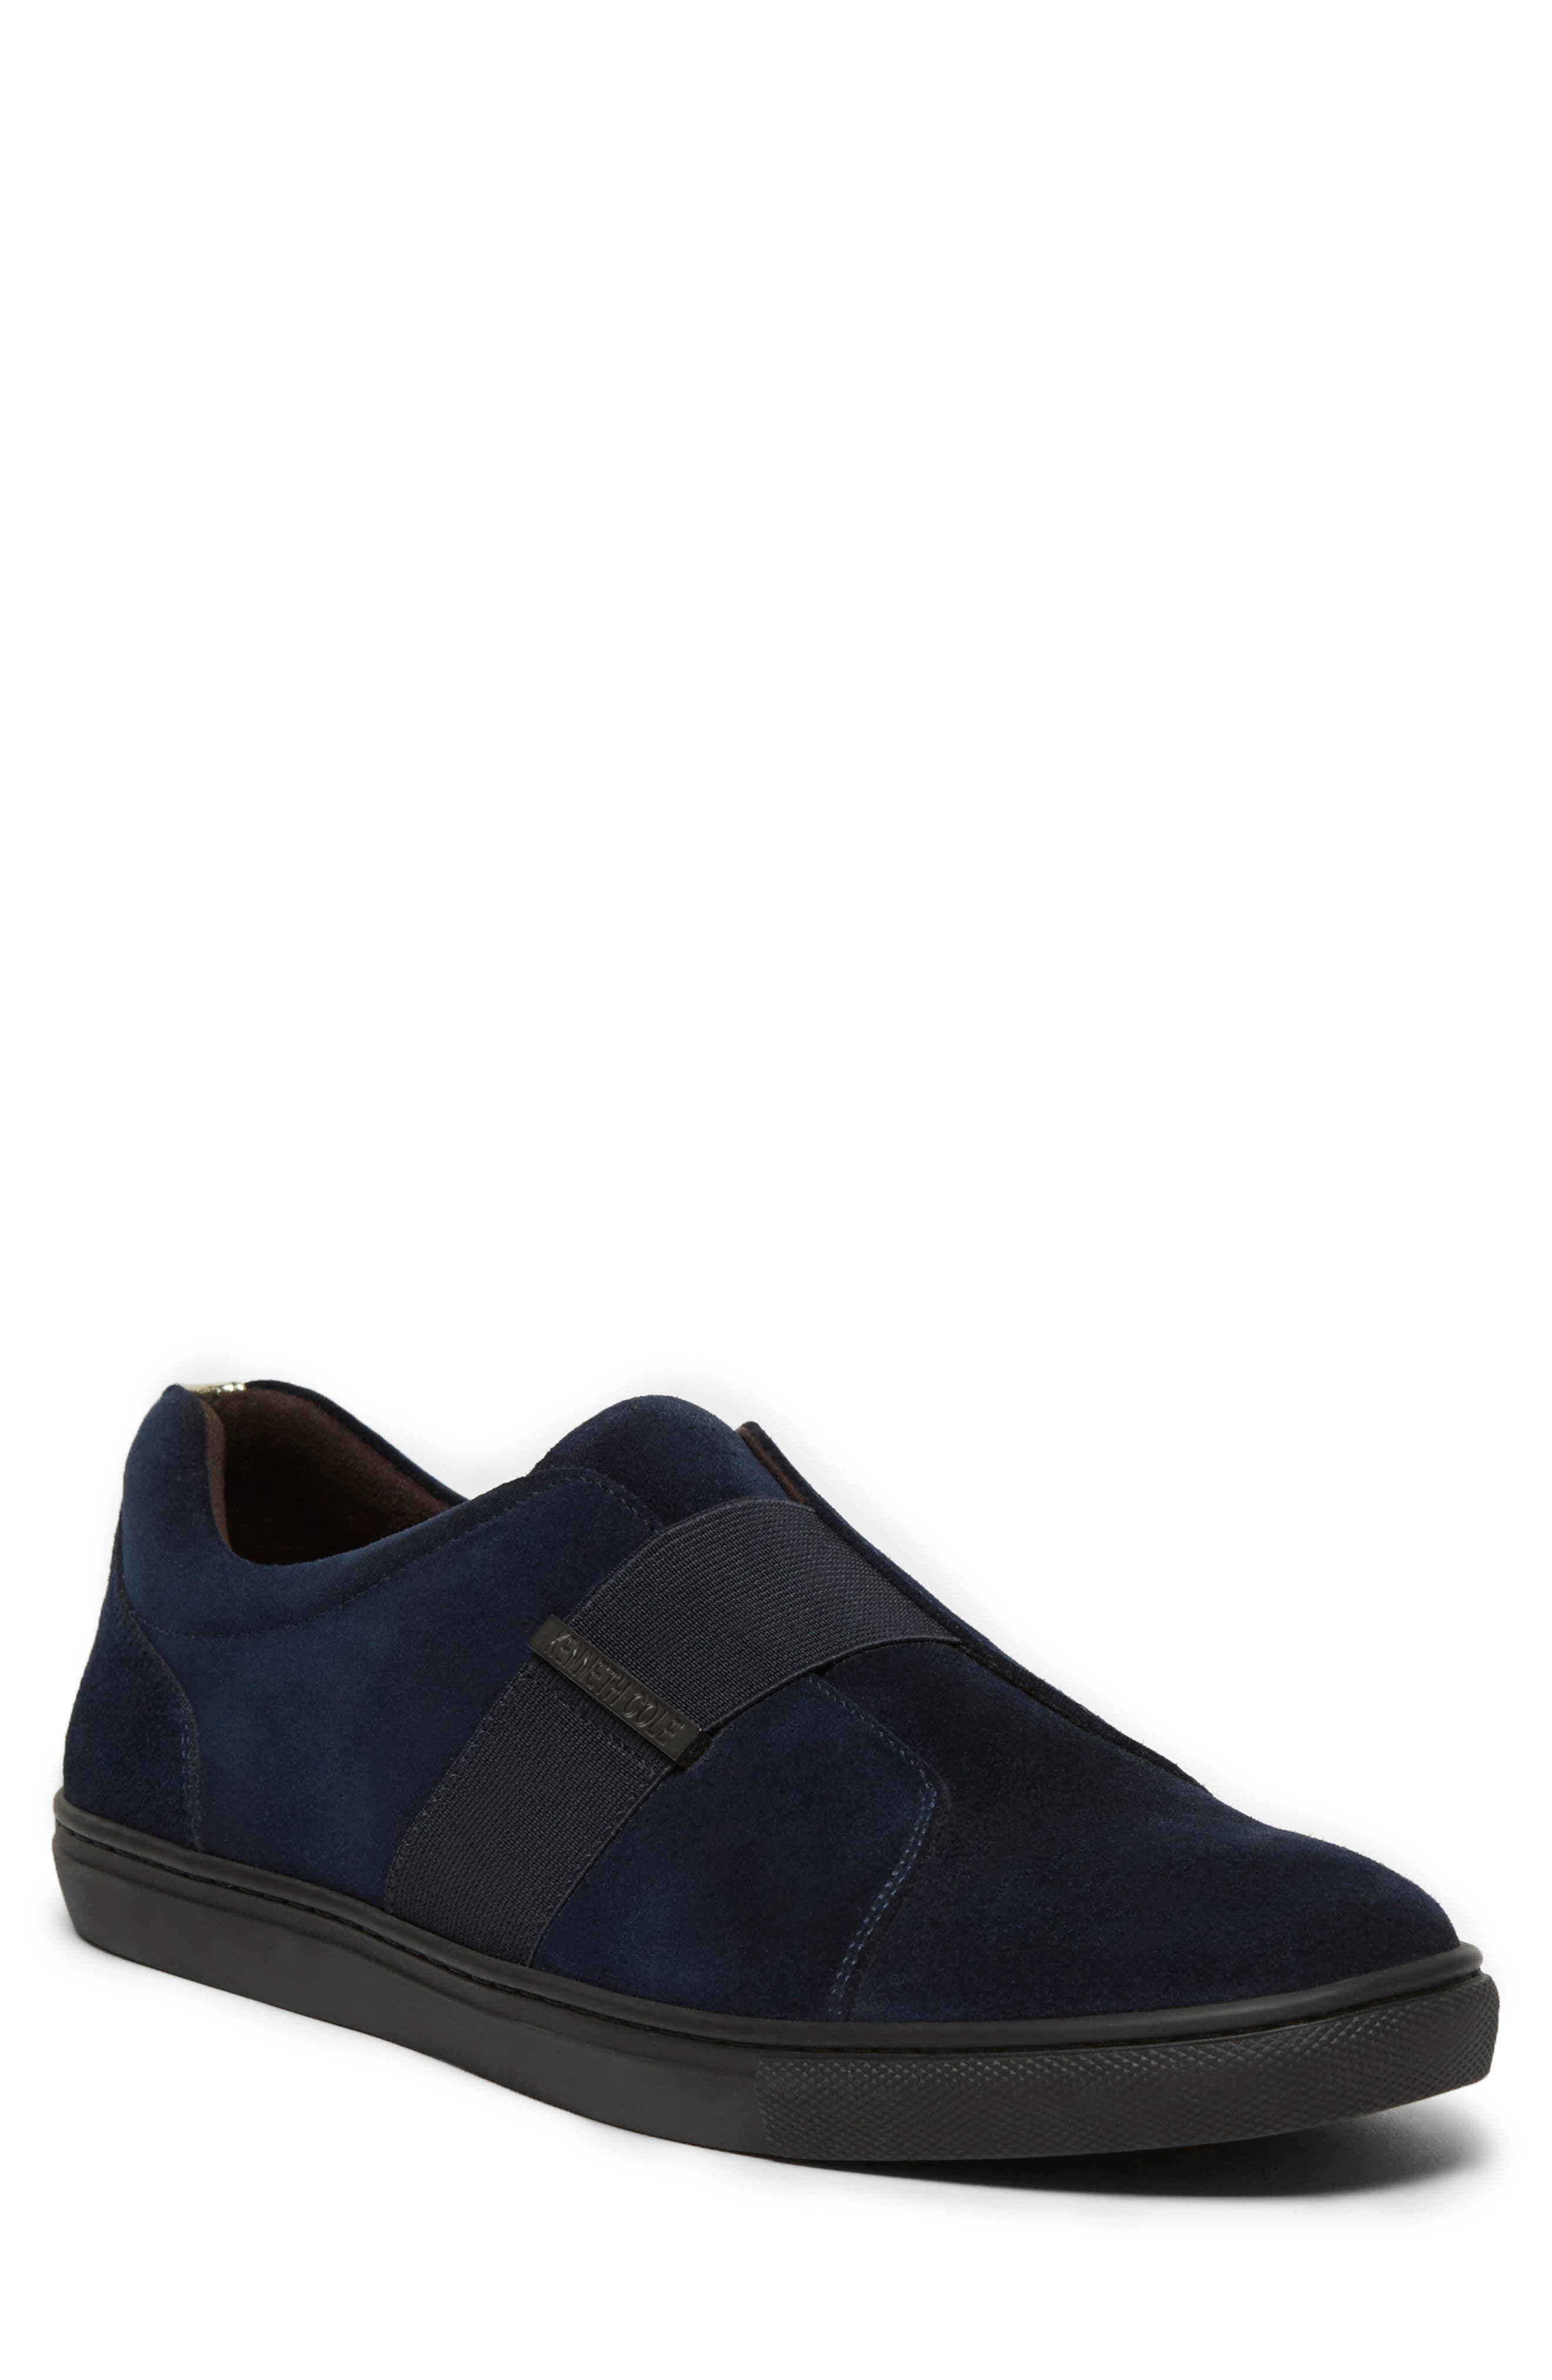 KENNETH COLE NEW YORK Kam Slip-On, Main, color, NAVY SUEDE